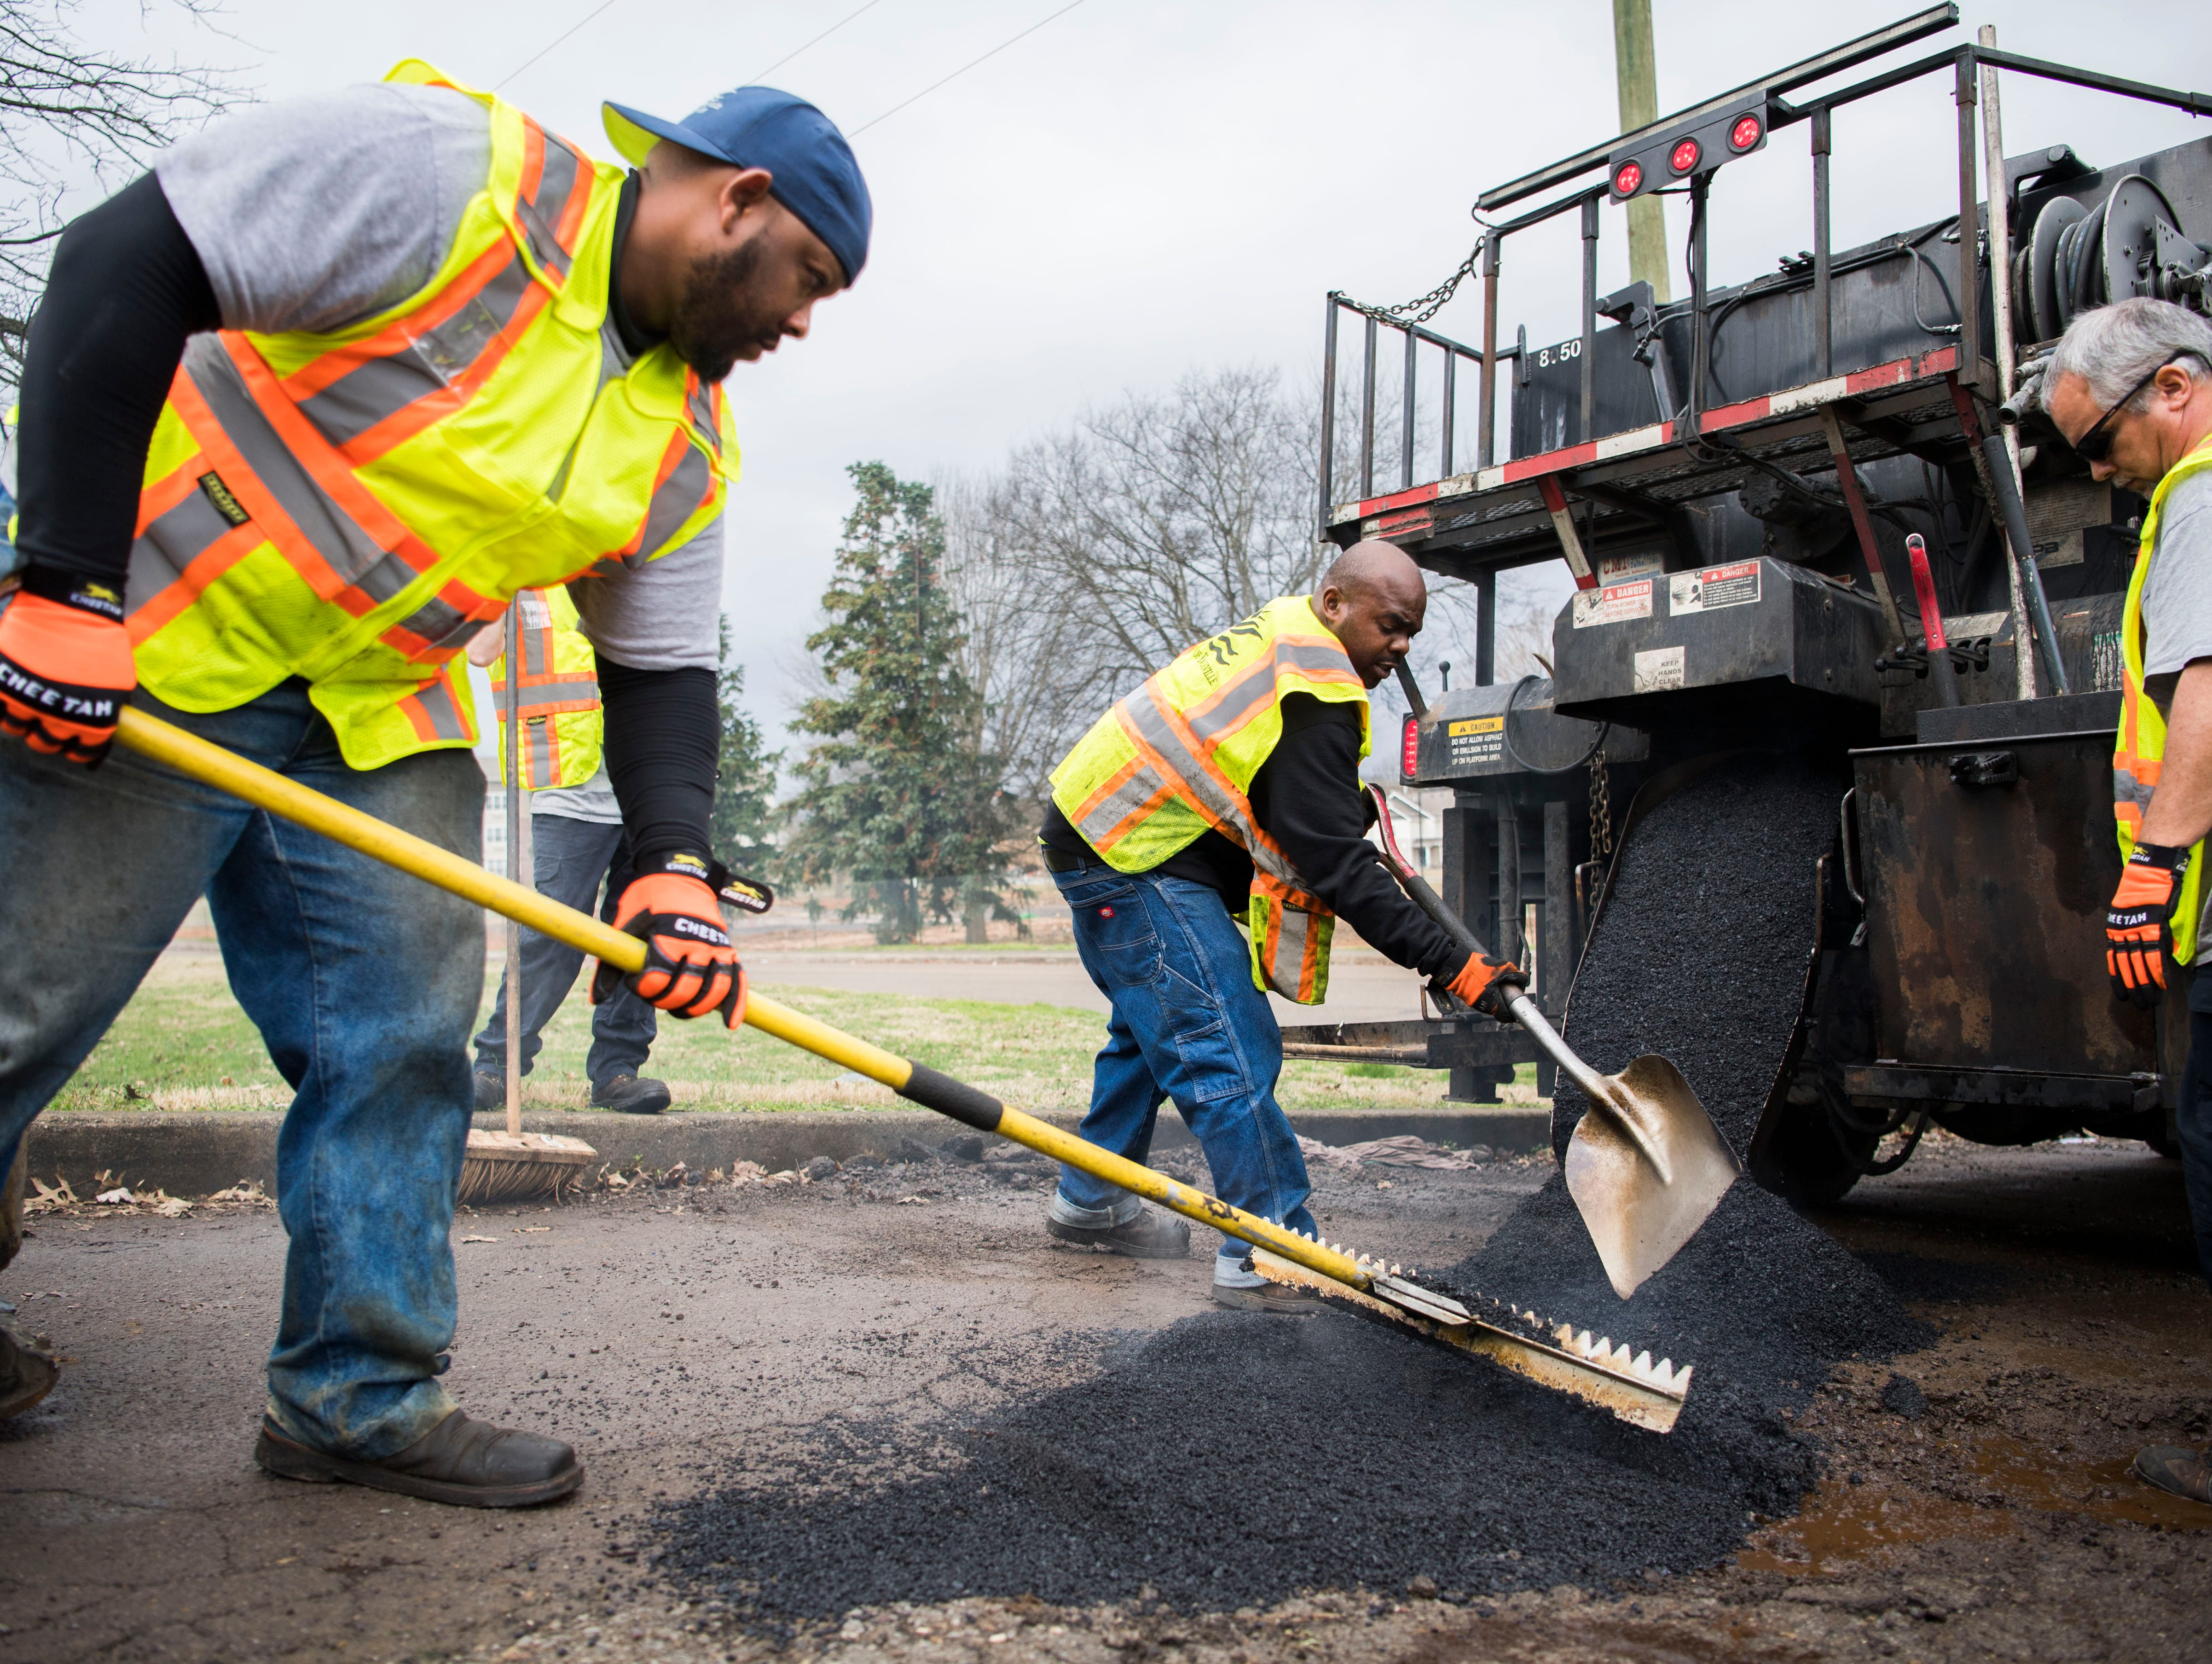 From left City of Knoxville employees Frankie Robinson, Anthony Johnson, and Matt Roth fill potholes for the City of Knoxville, on Sanders Lane in East Knoxville, Thursday, Feb. 7, 2018